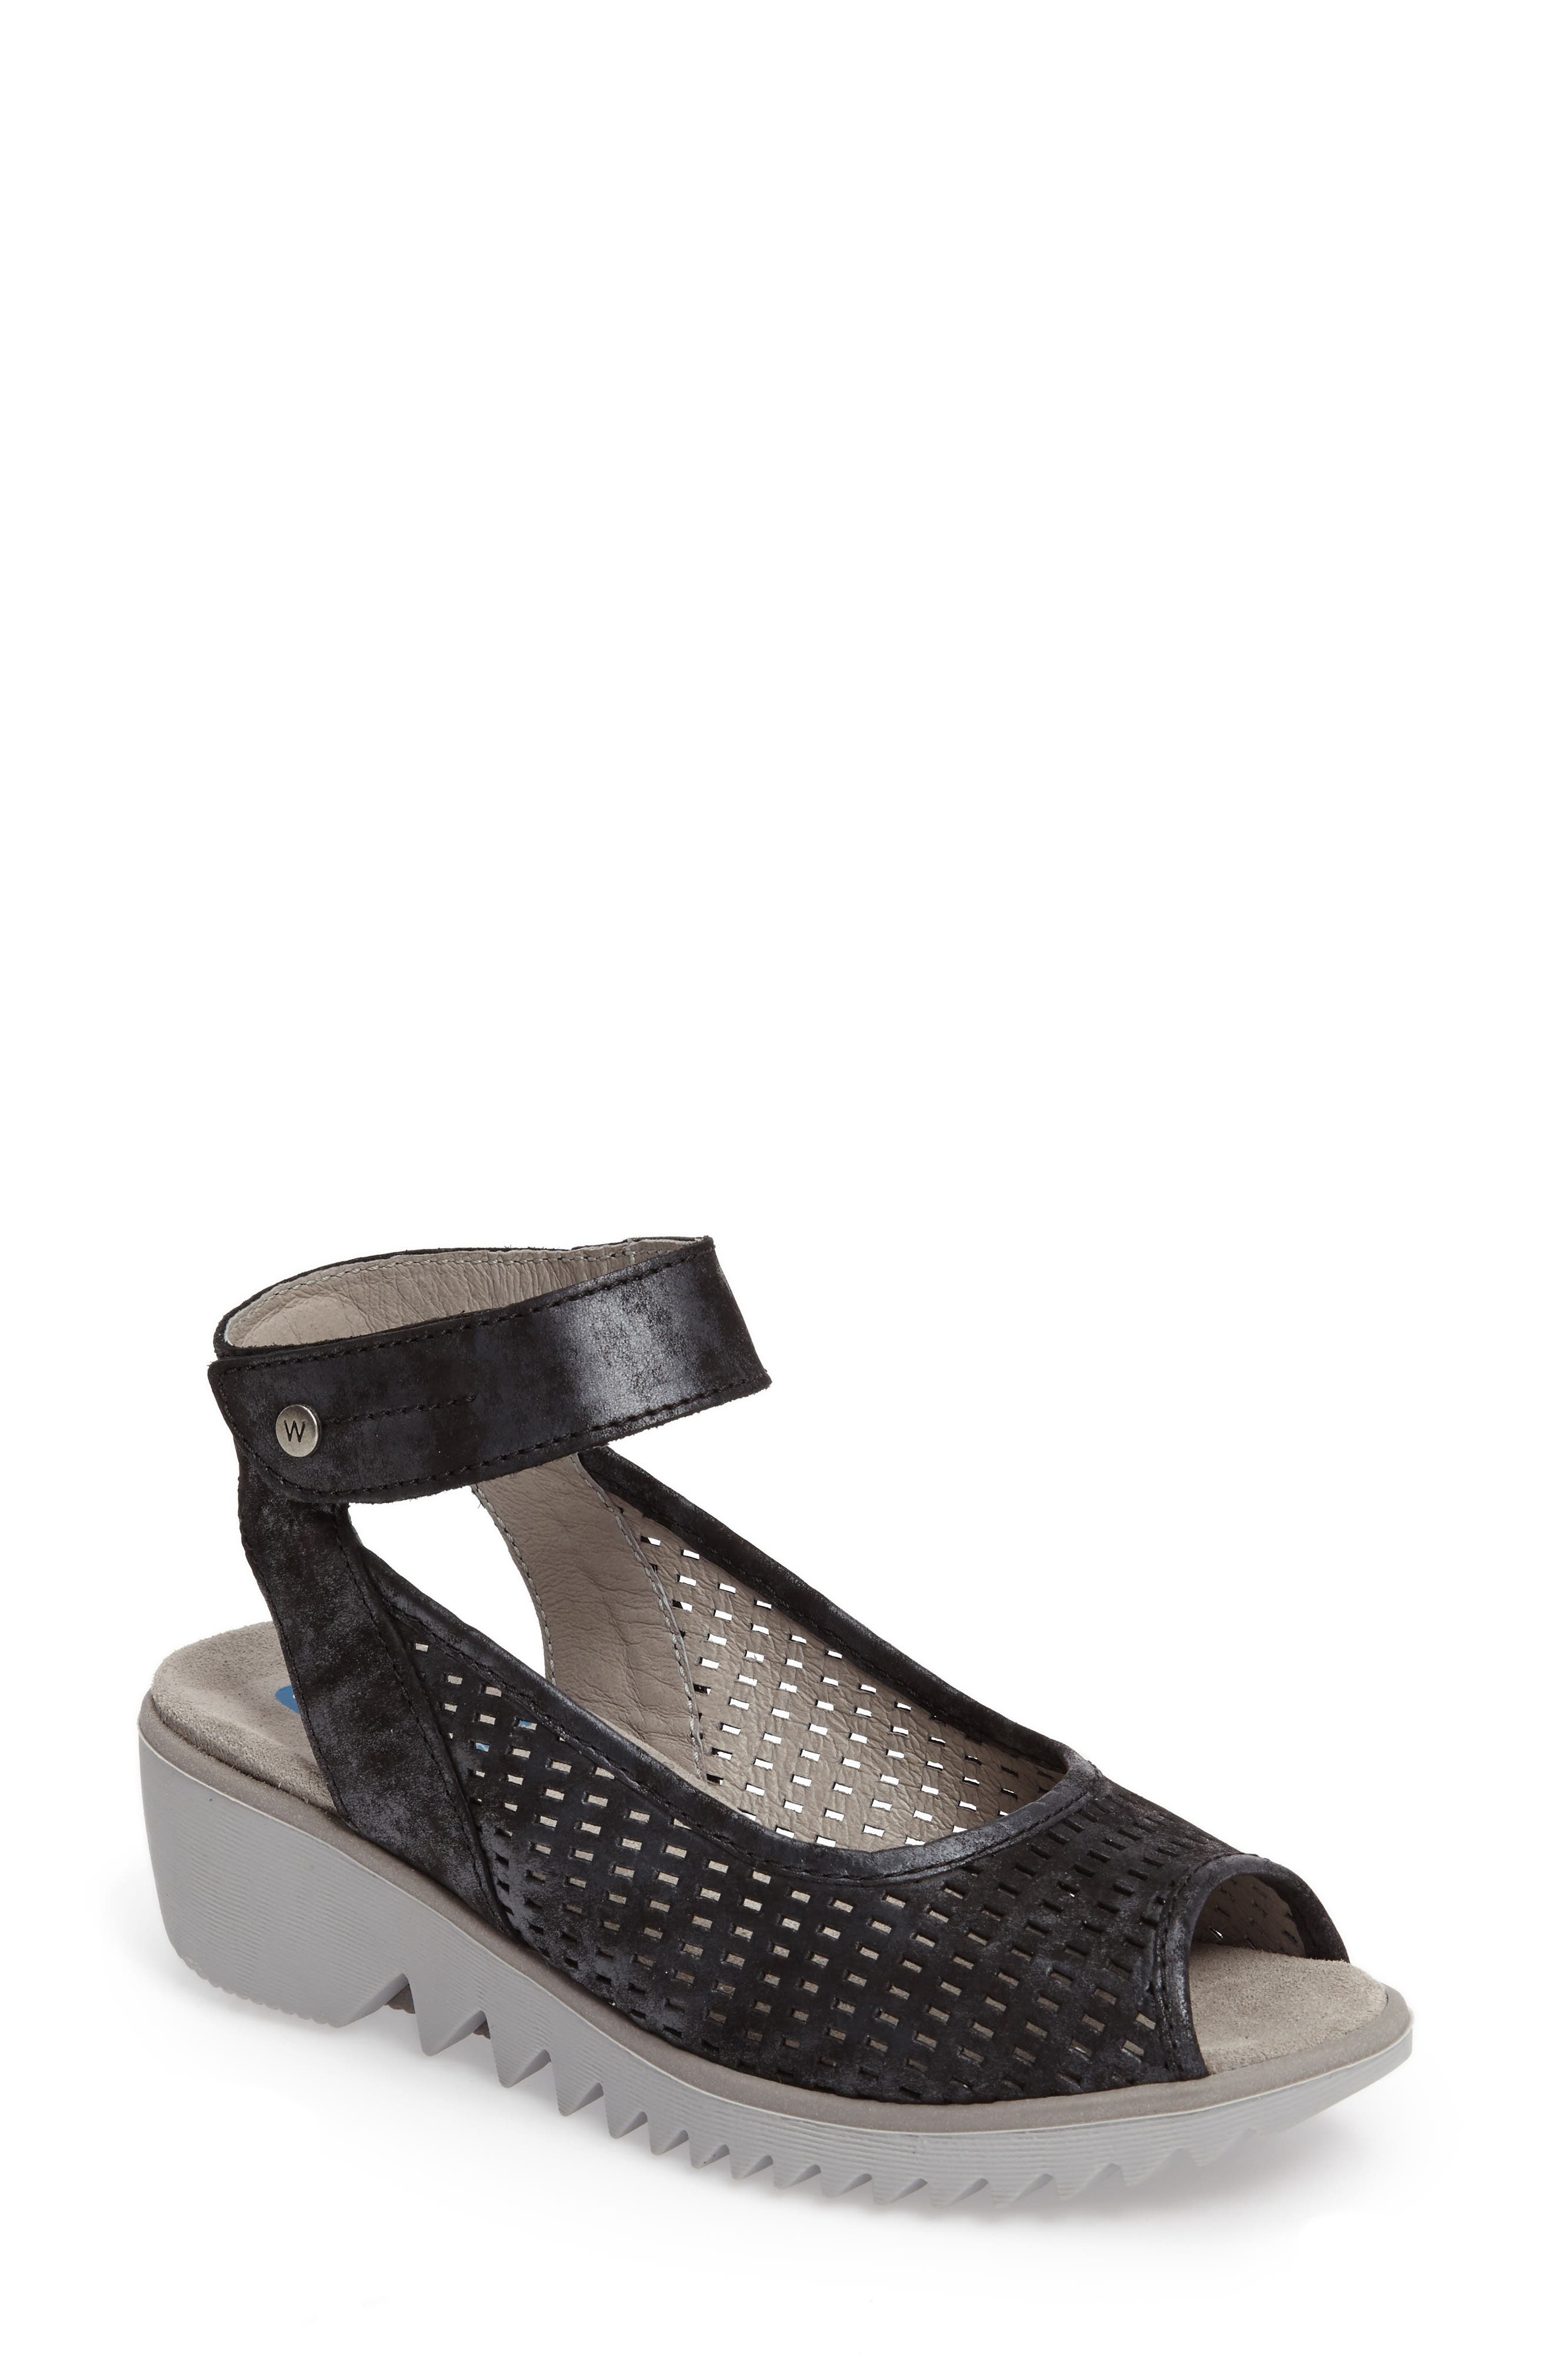 Frosty Ankle Strap Wedge Sandal,                         Main,                         color, 001